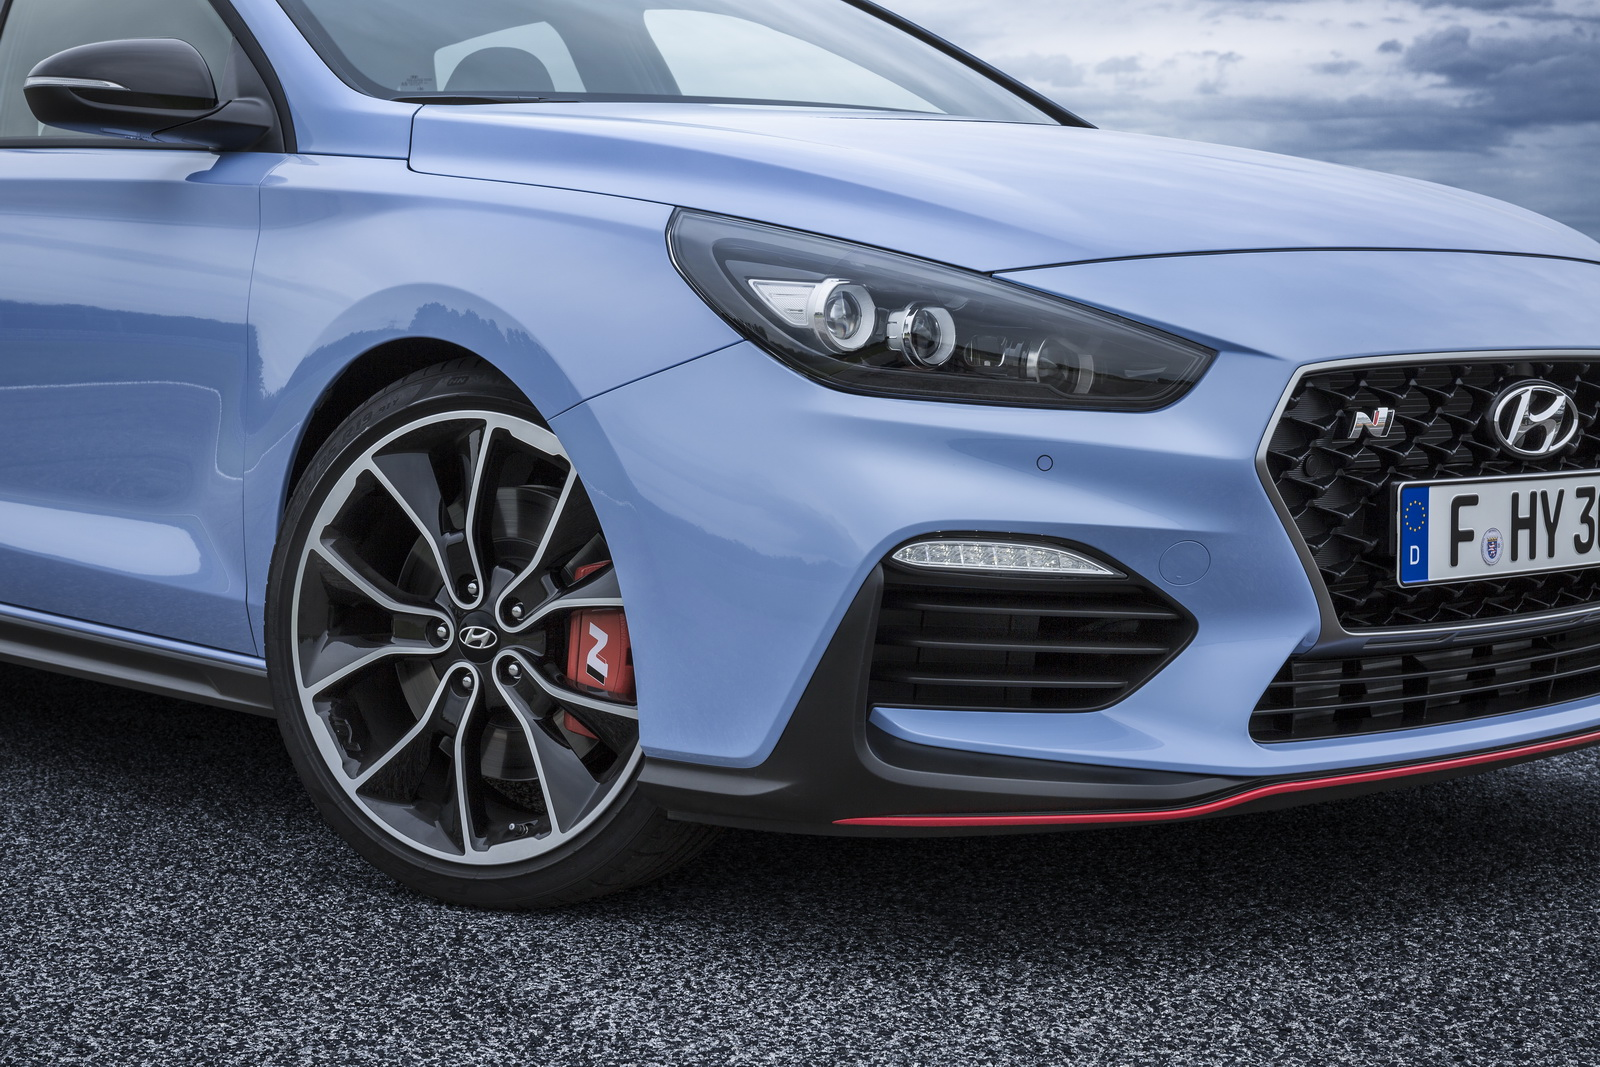 Hyundai Elantra 2017 Custom >> New Hyundai i30 N Officially Revealed With Up To 271HP, 0-62 In 6.1 Sec | Carscoops